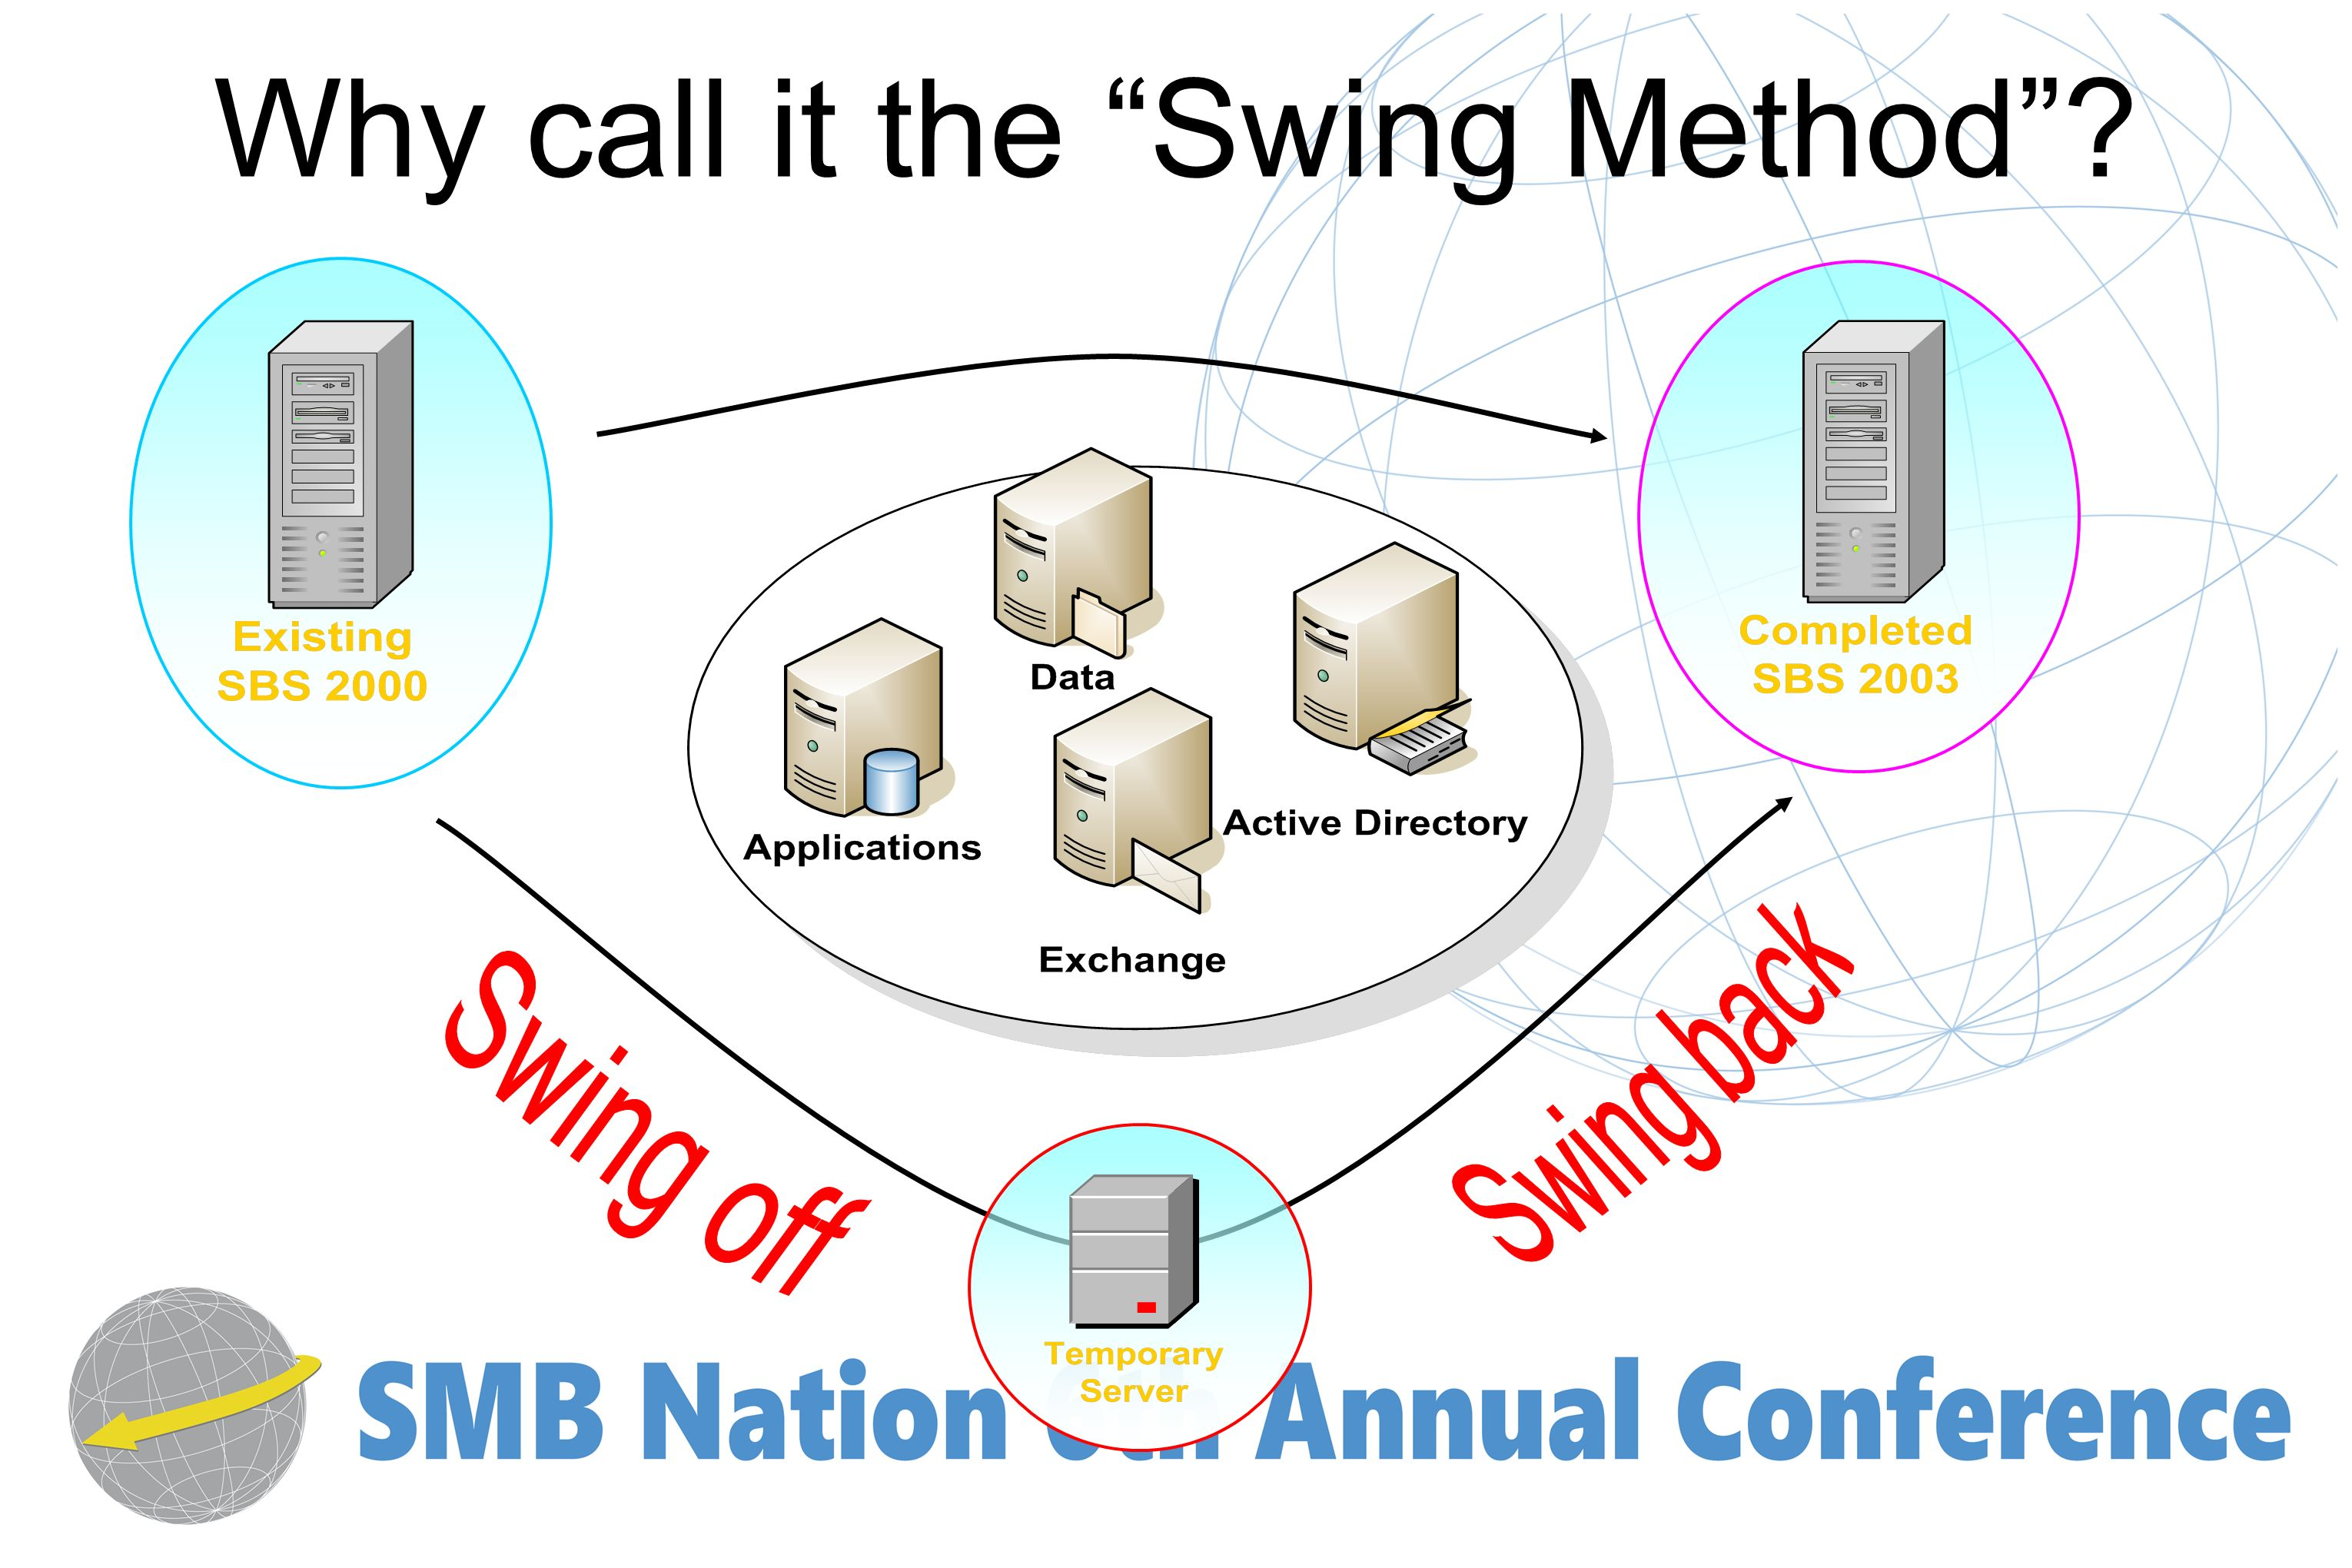 Why call it the Swing Method?